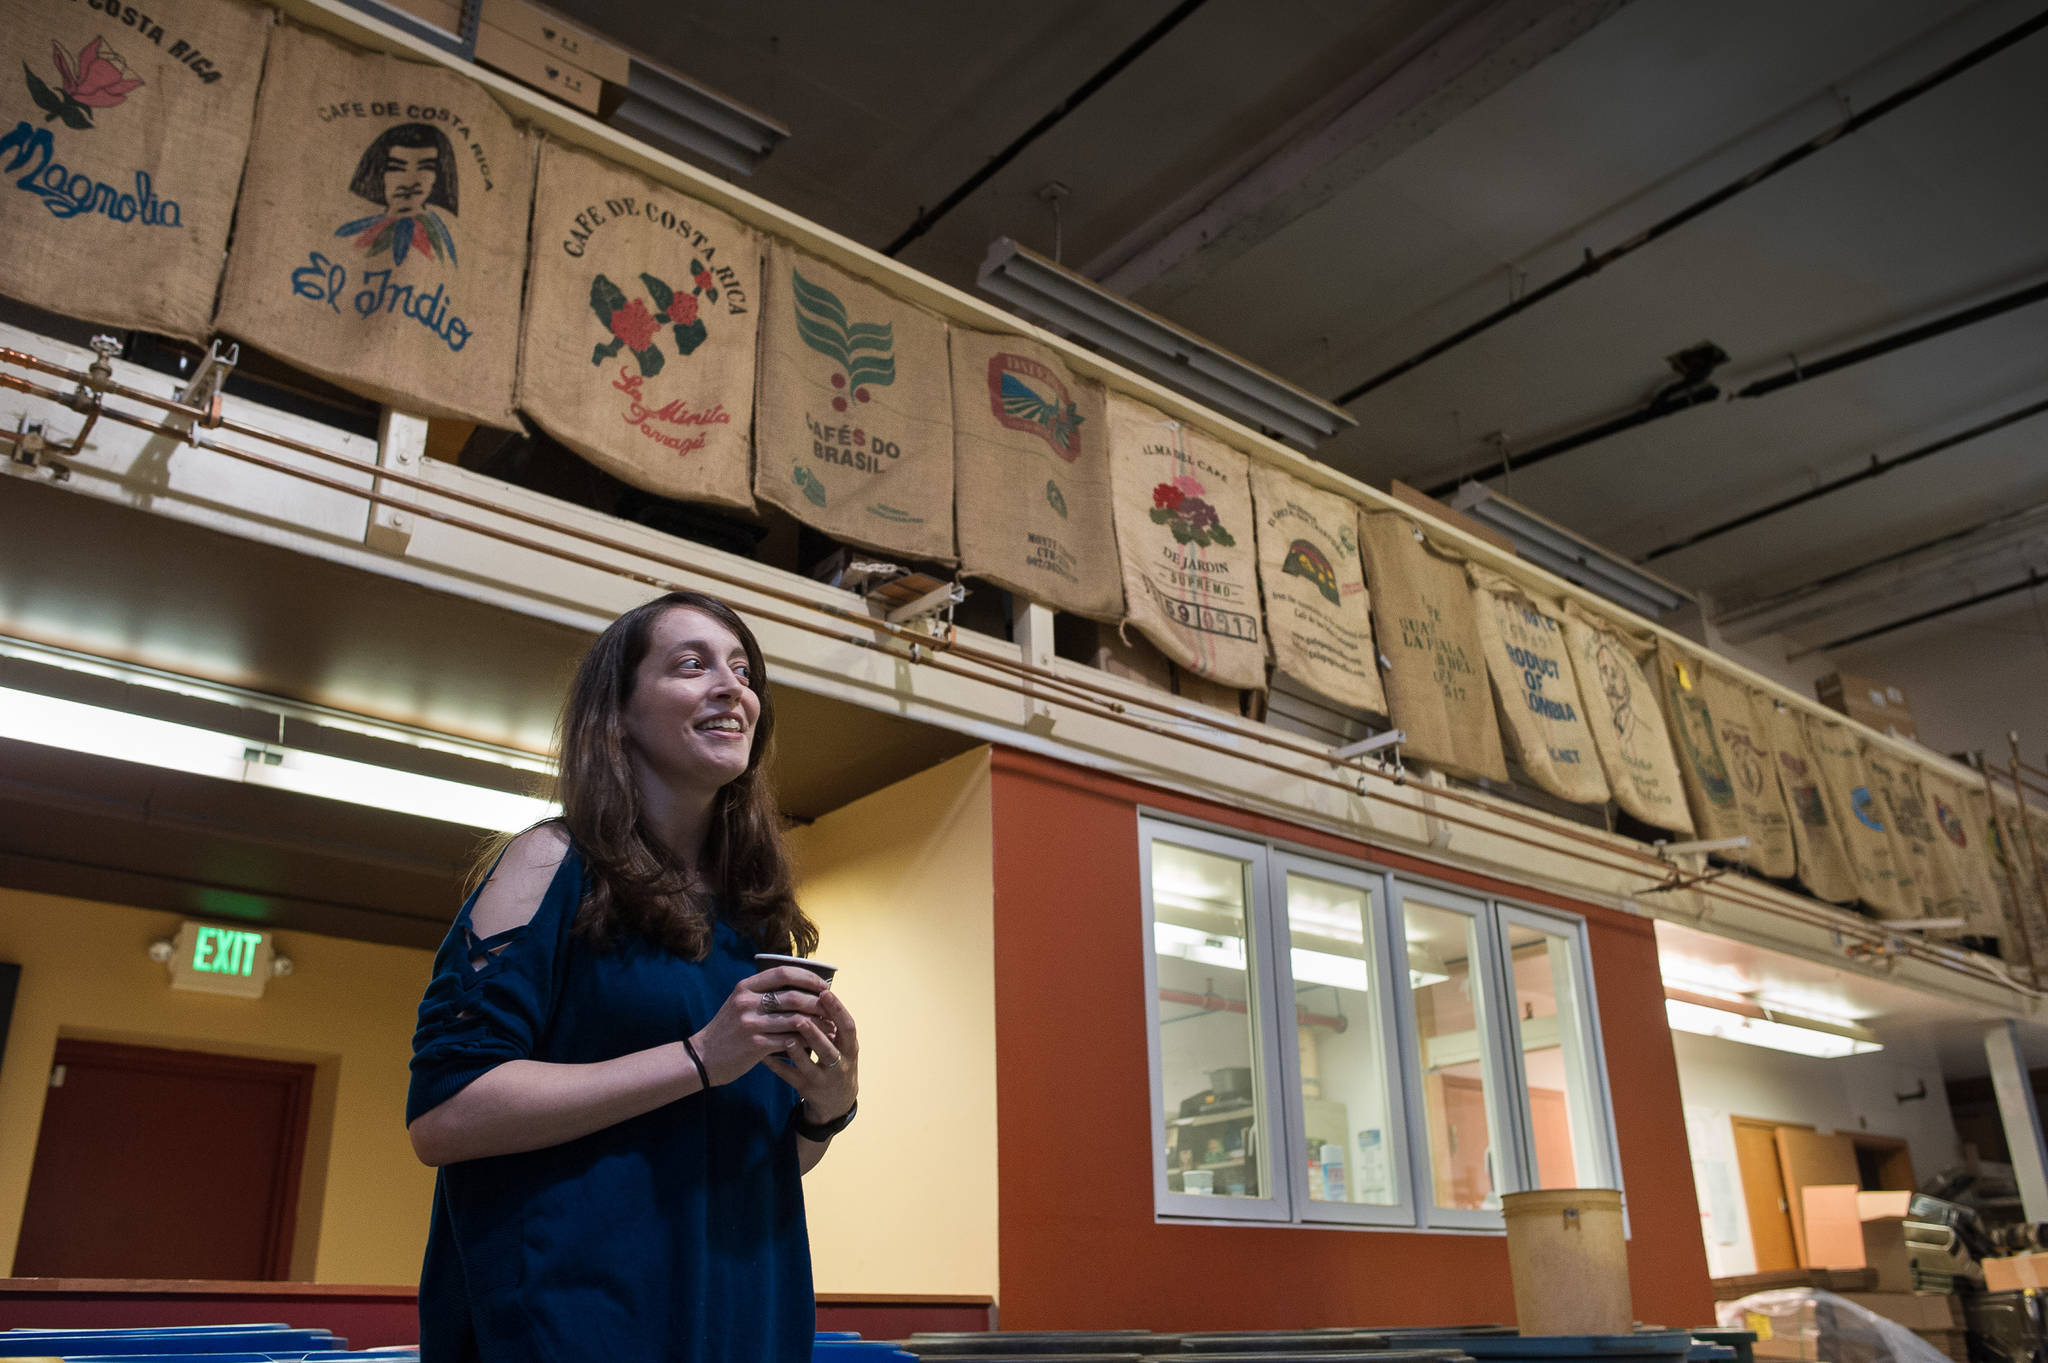 Amy Knight talks about her new ownership of Heritage Coffee at their downtown office and roasting facility on Thursday, Aug. 31, 2017. (Michael Penn | Juneau Empire)